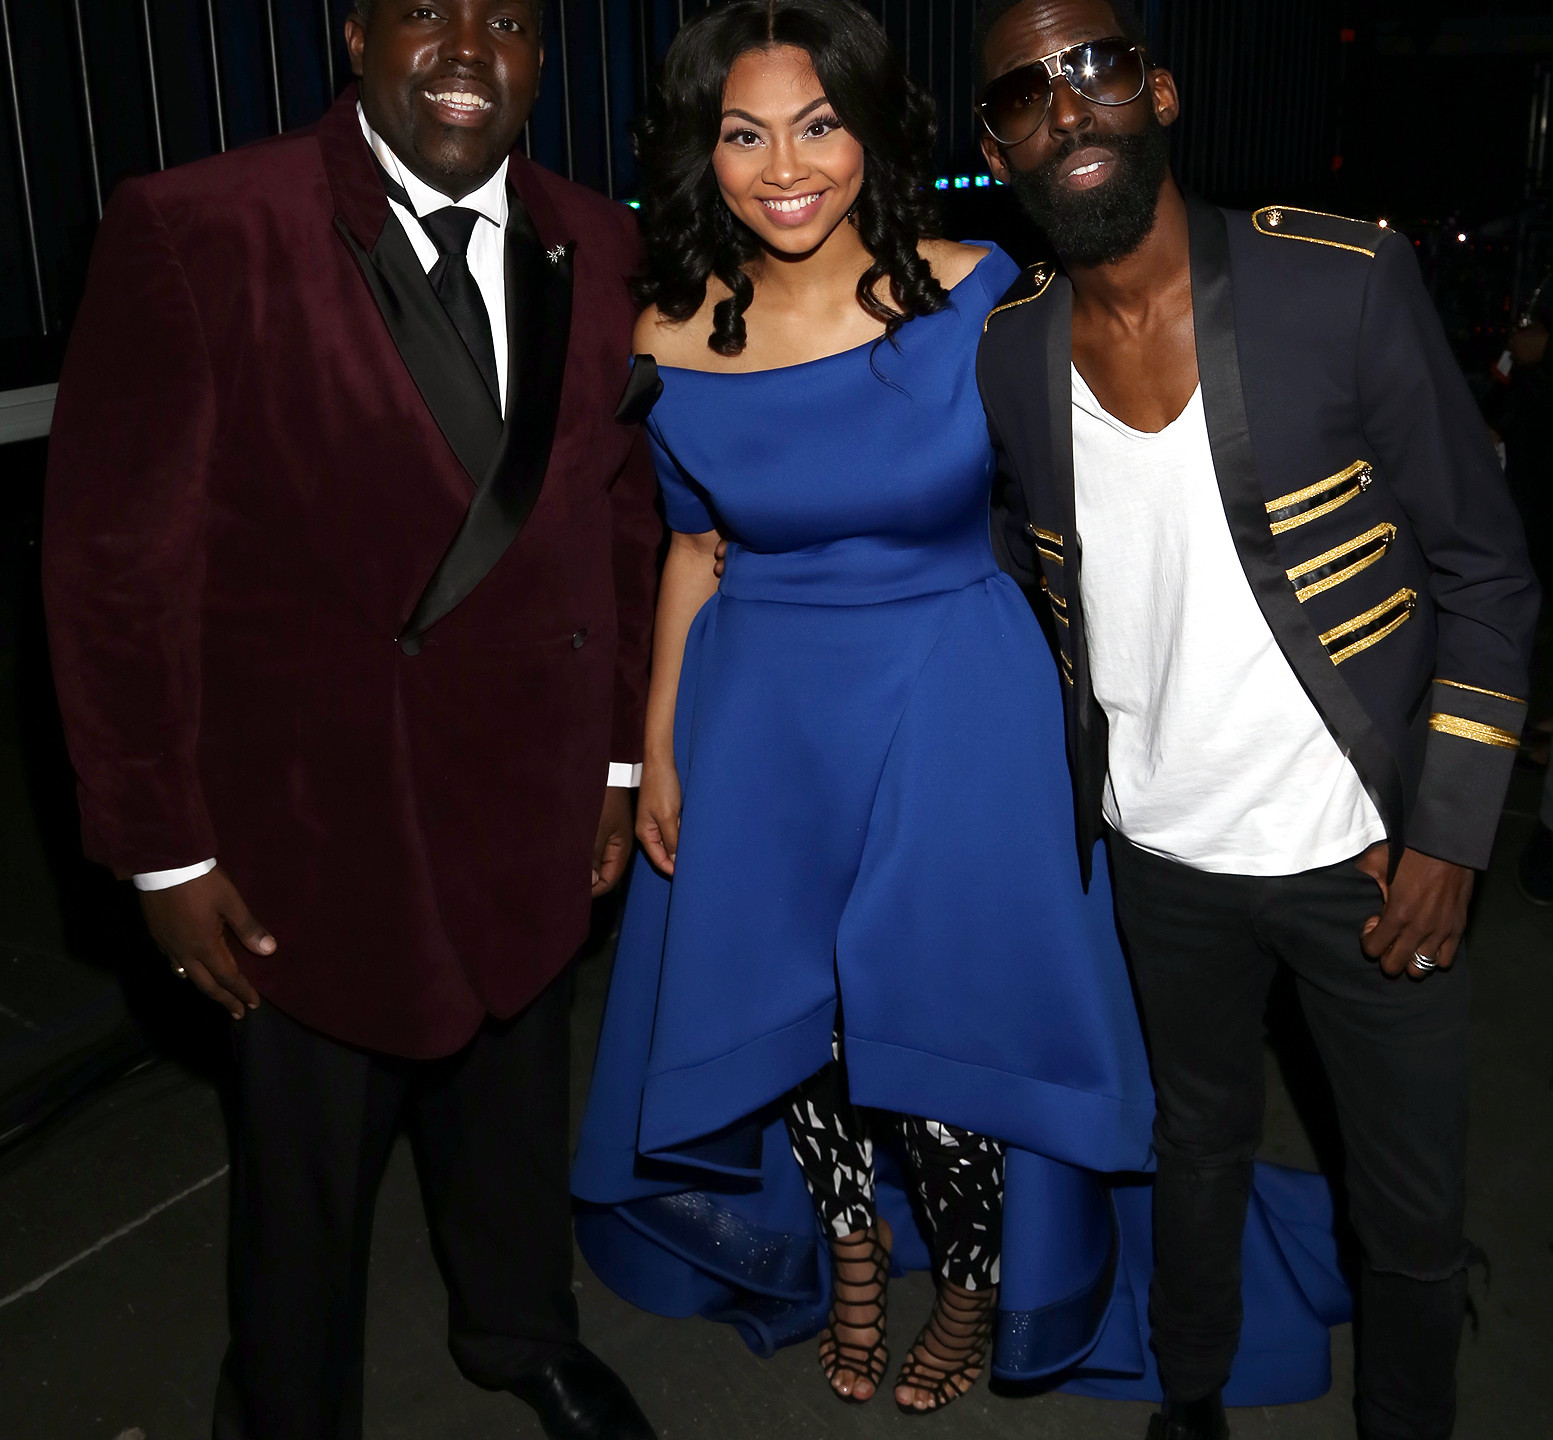 William McDowell with Bri and Tye Tribbett by Arnold Turner